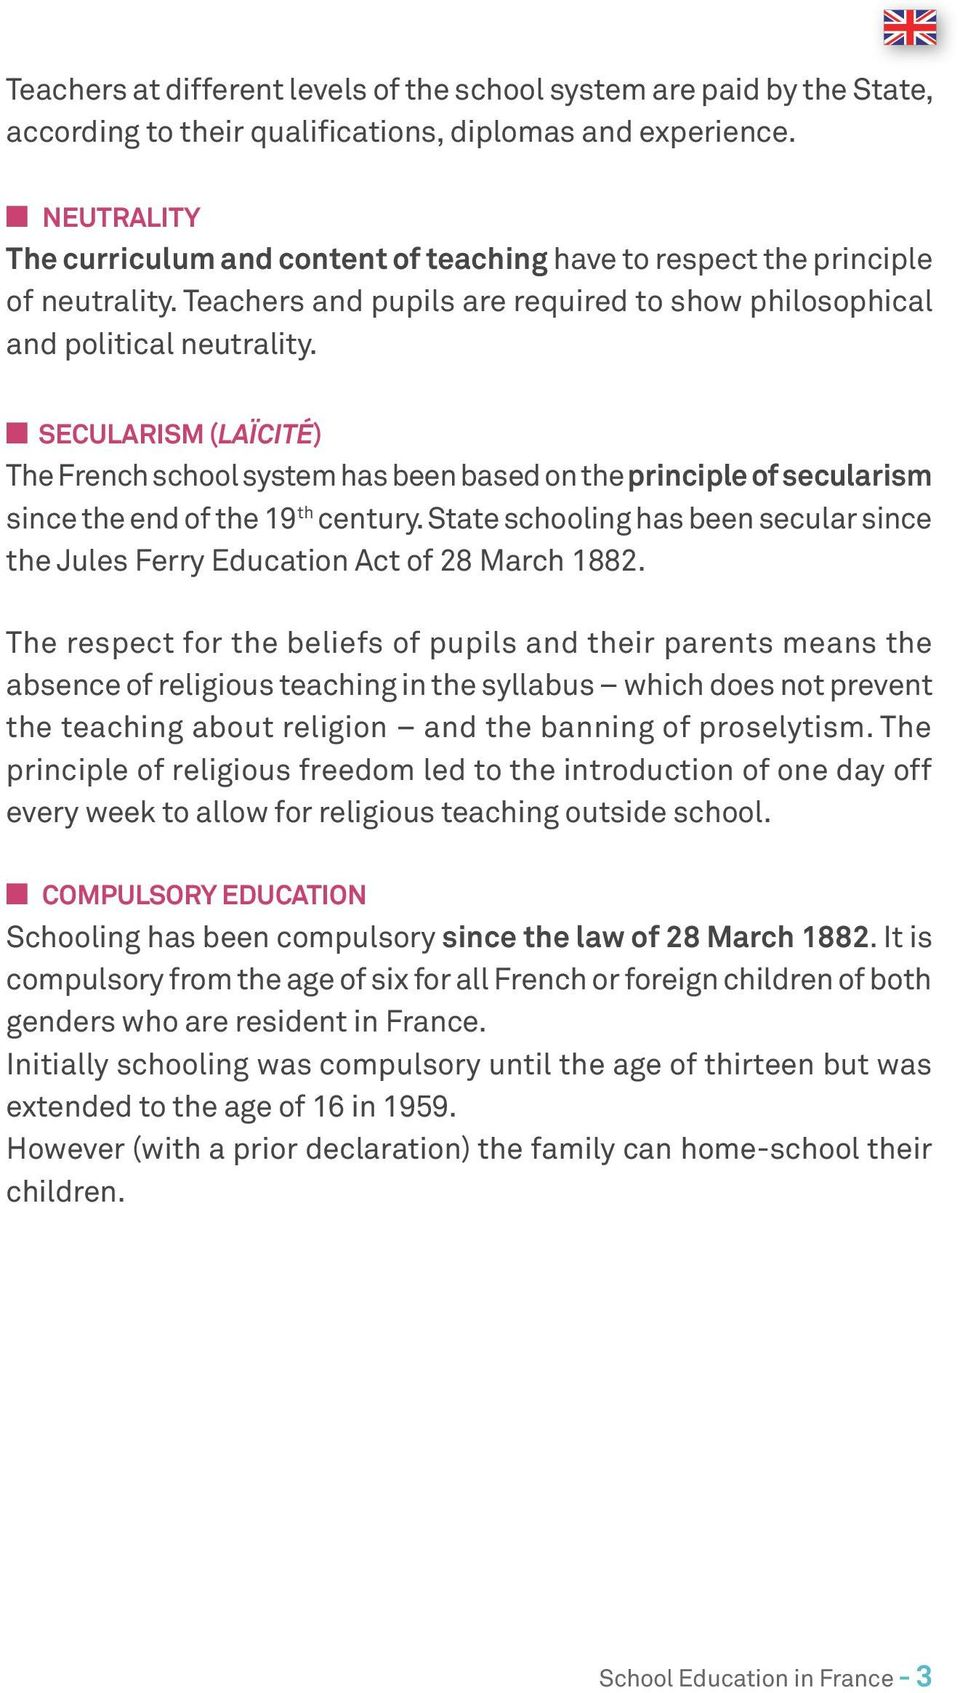 Secularism (Laïcité) The French school system has been based on the principle of secularism since the end of the 19 th century.